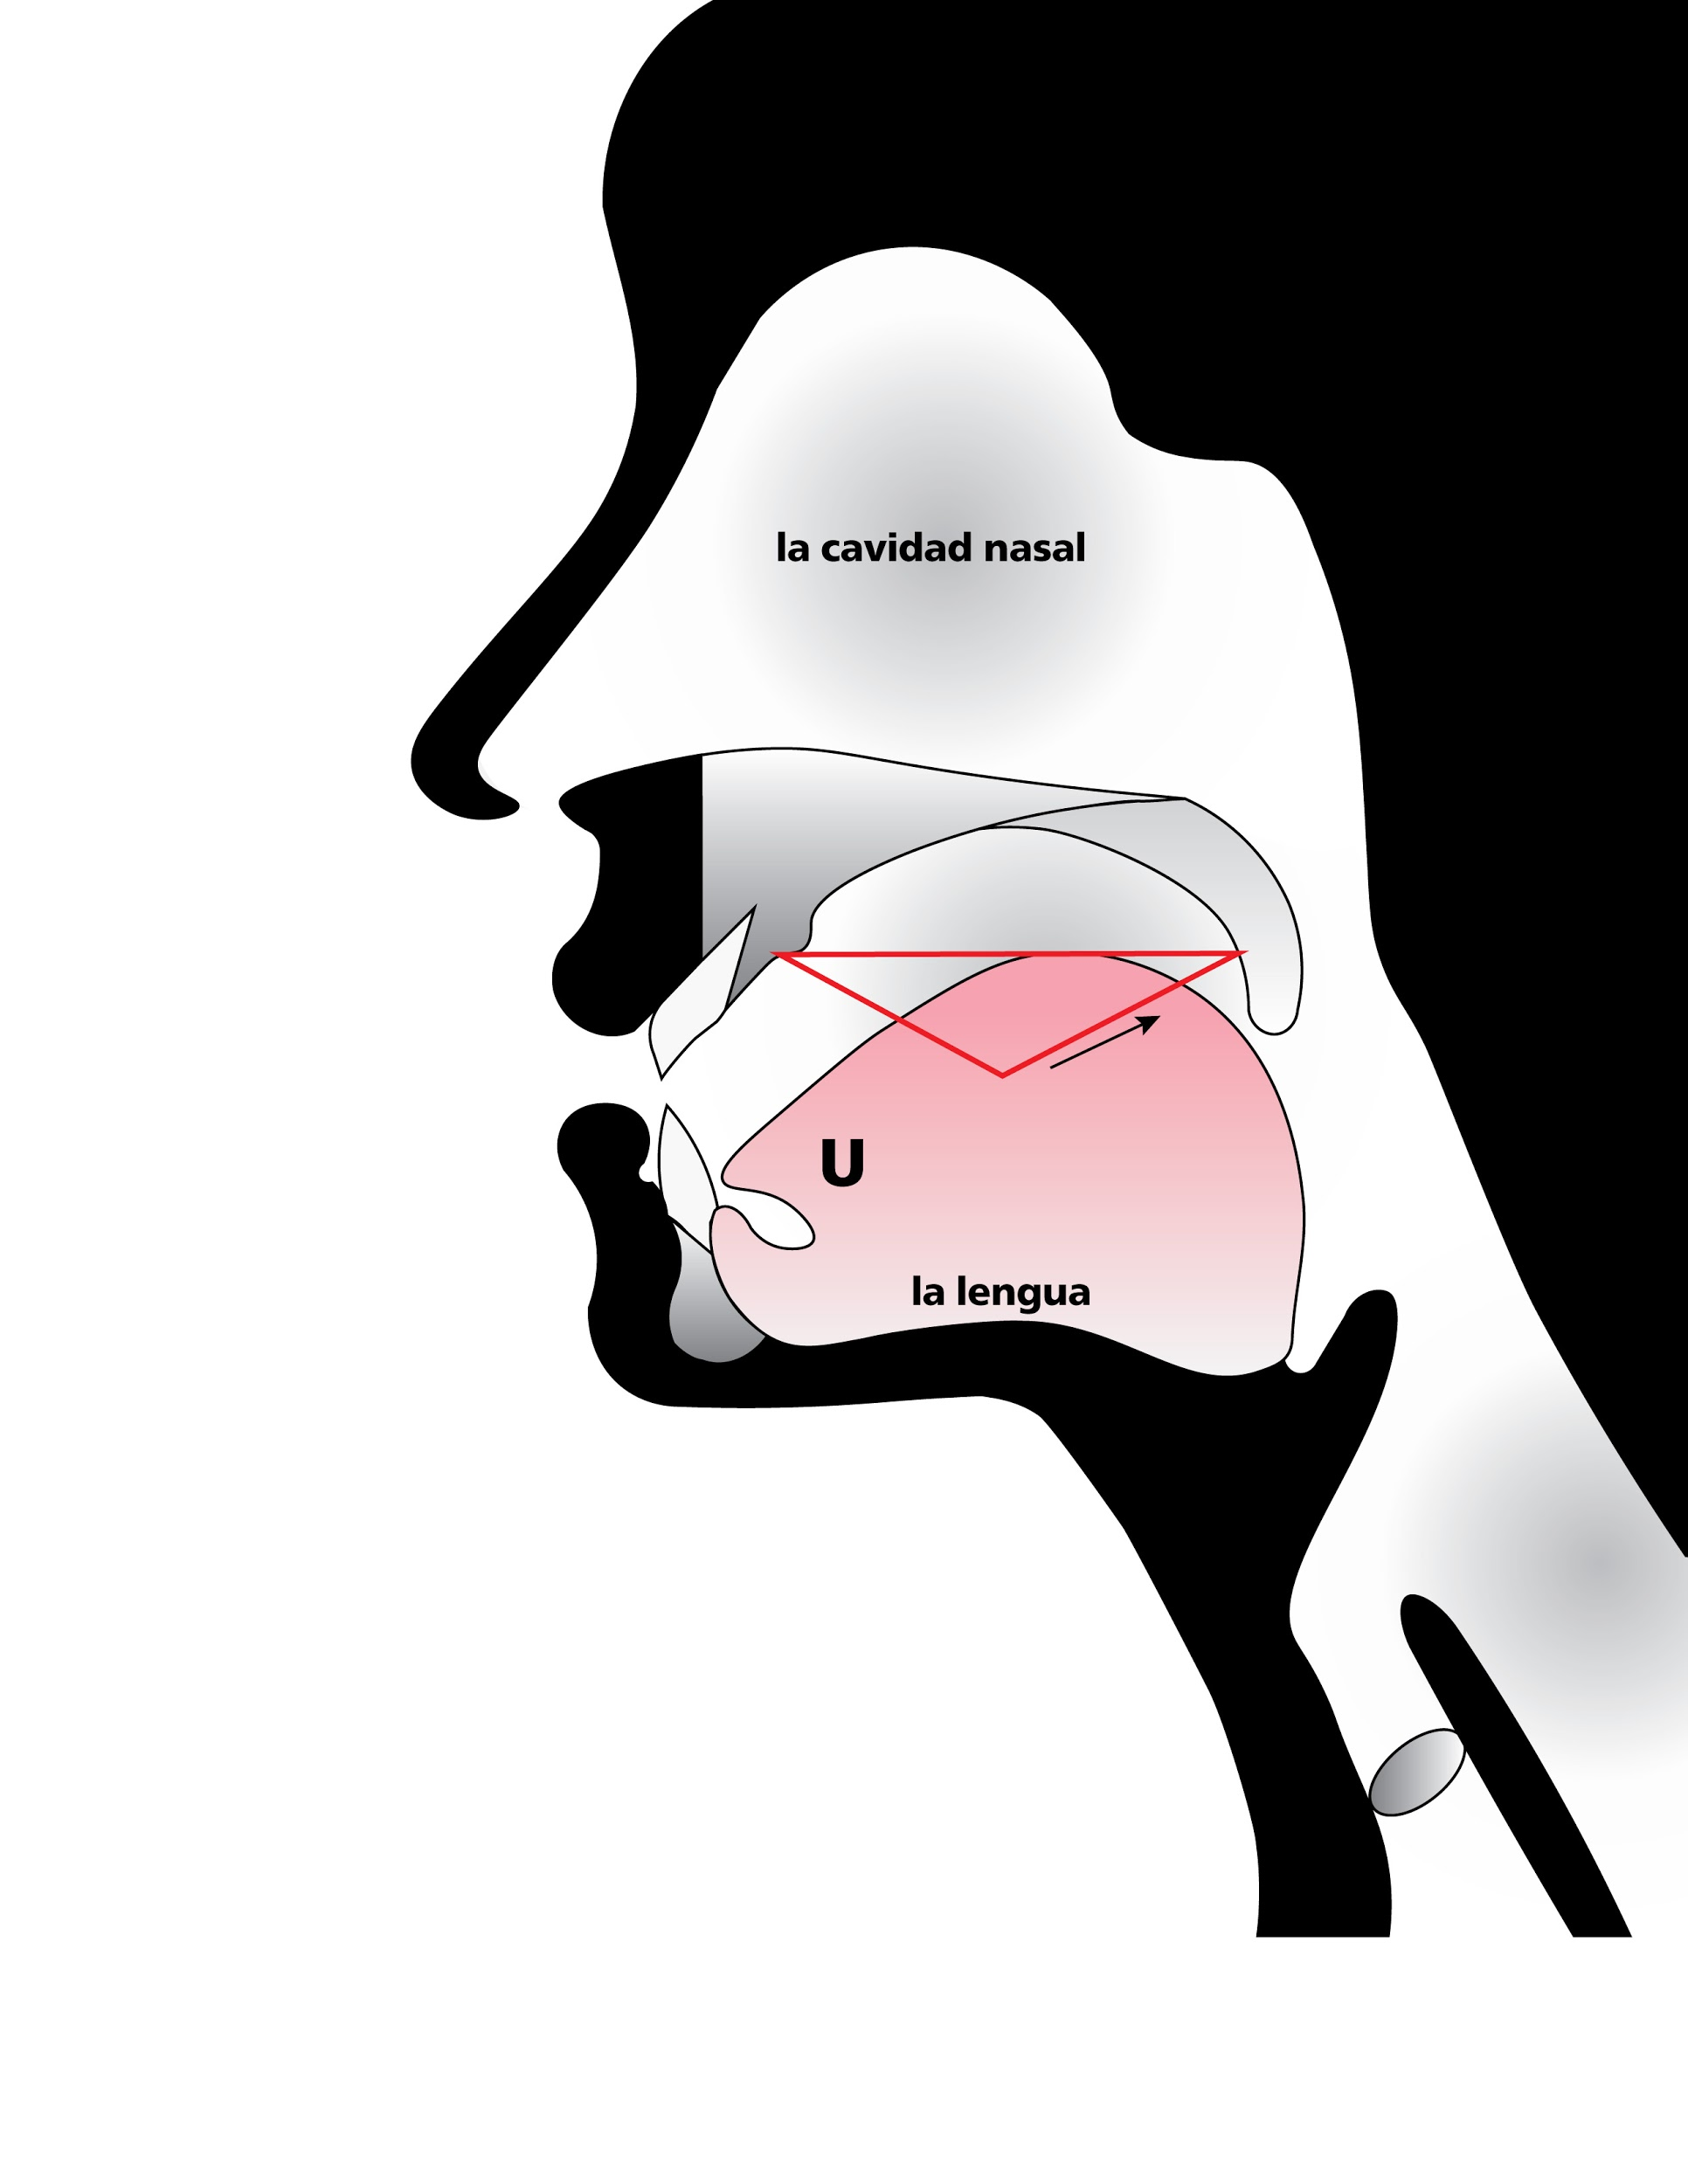 Anatomical sketch of head while speaking, emphasizing space of roof of mouth when tongue pulled back in mouth, in Spanish